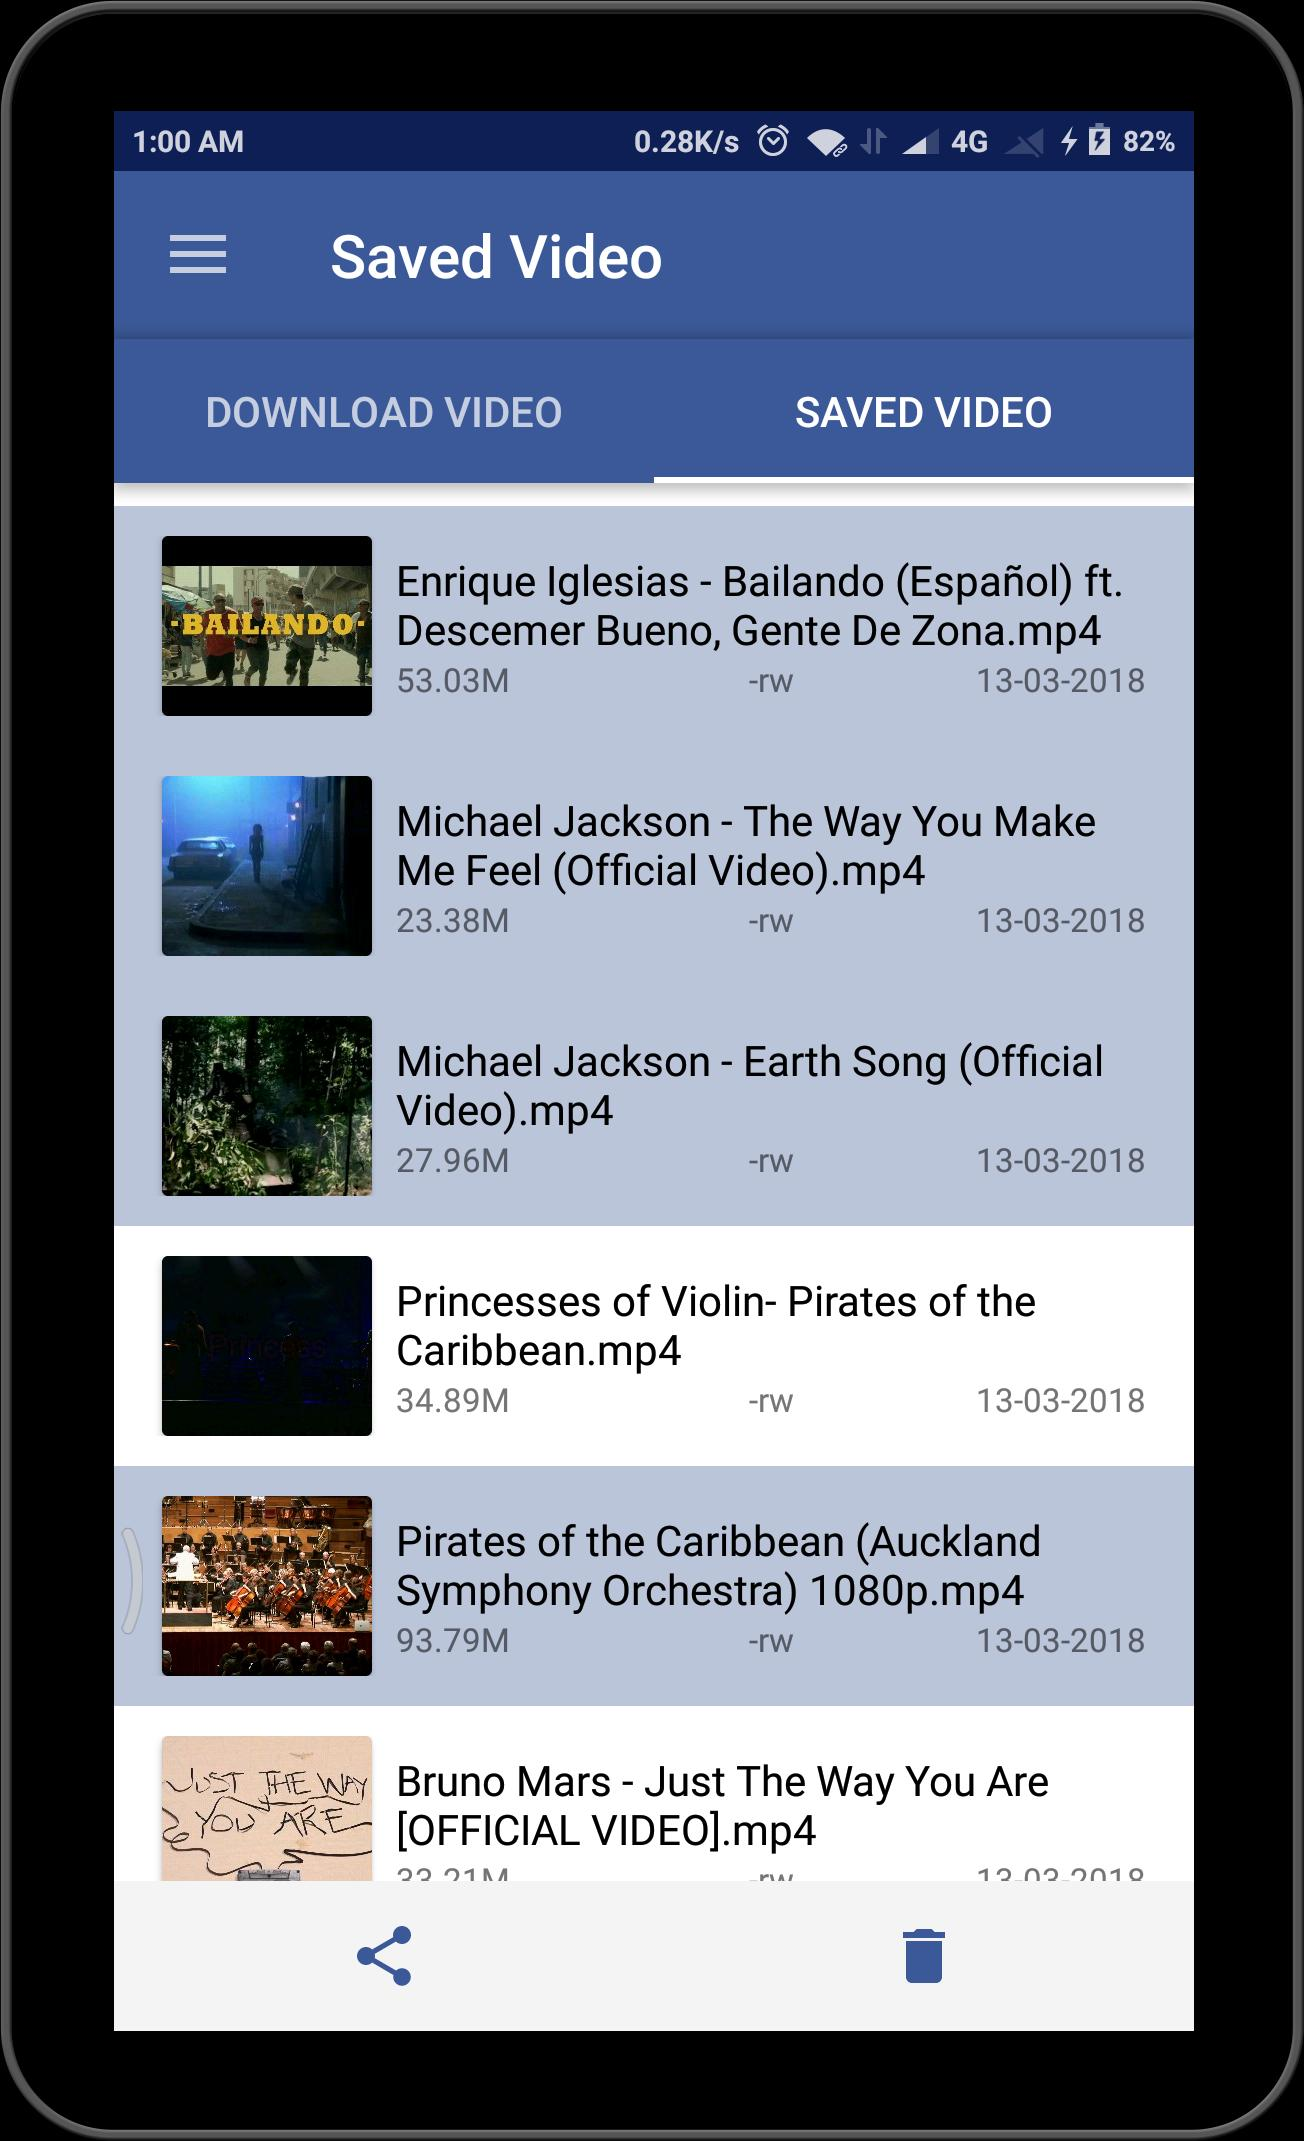 FB Video Downloader - High quality Facebook video for